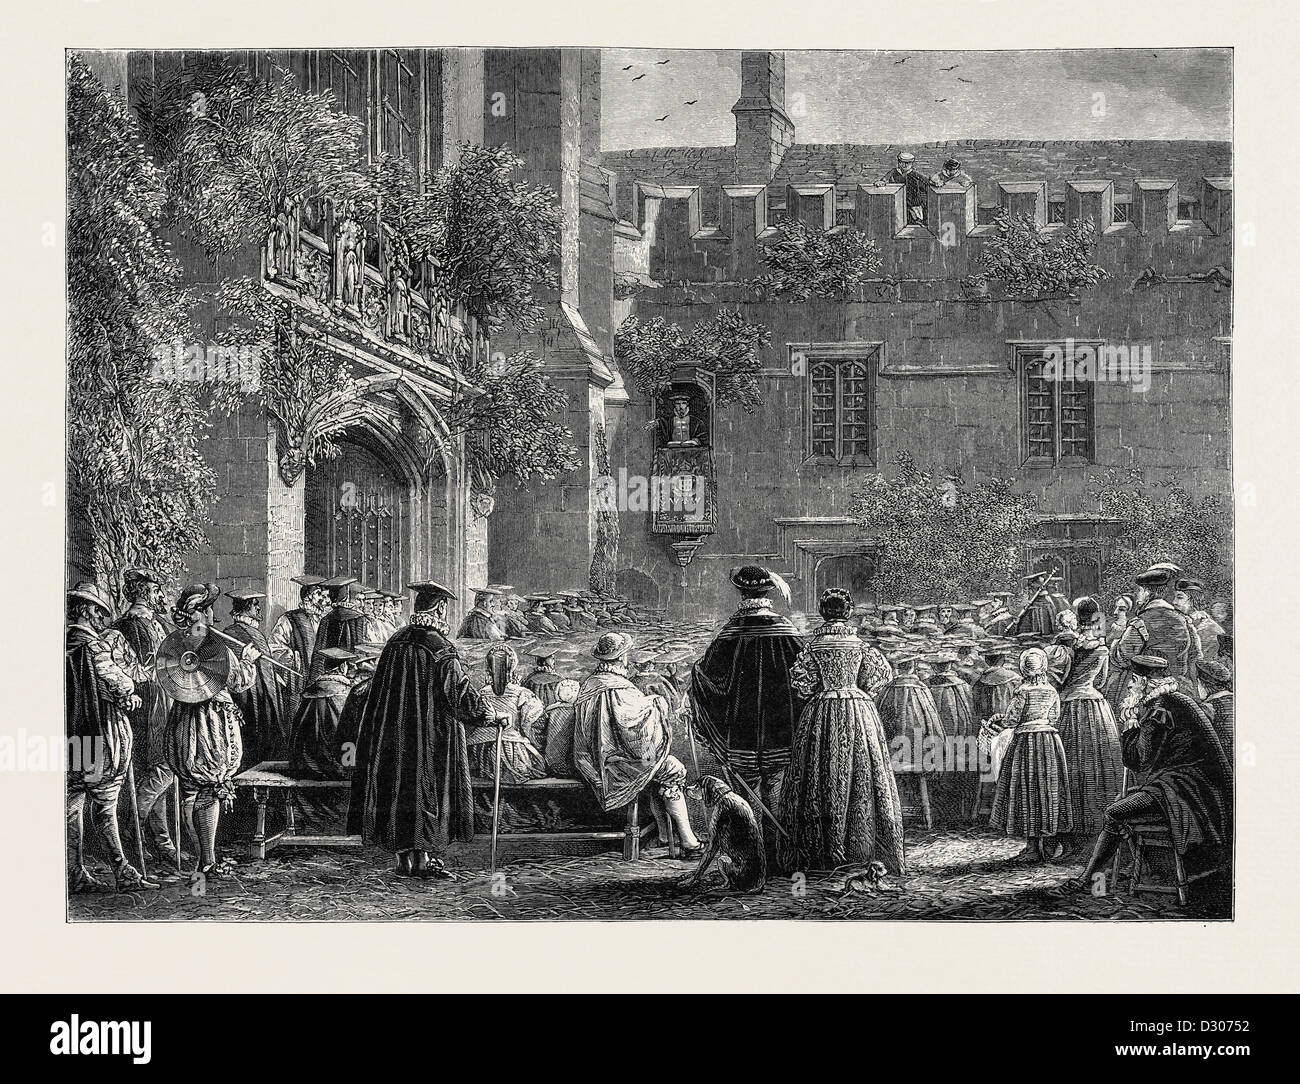 PALM SUNDAY AT OXFORD IN THE OLDEN TIME - Stock Image